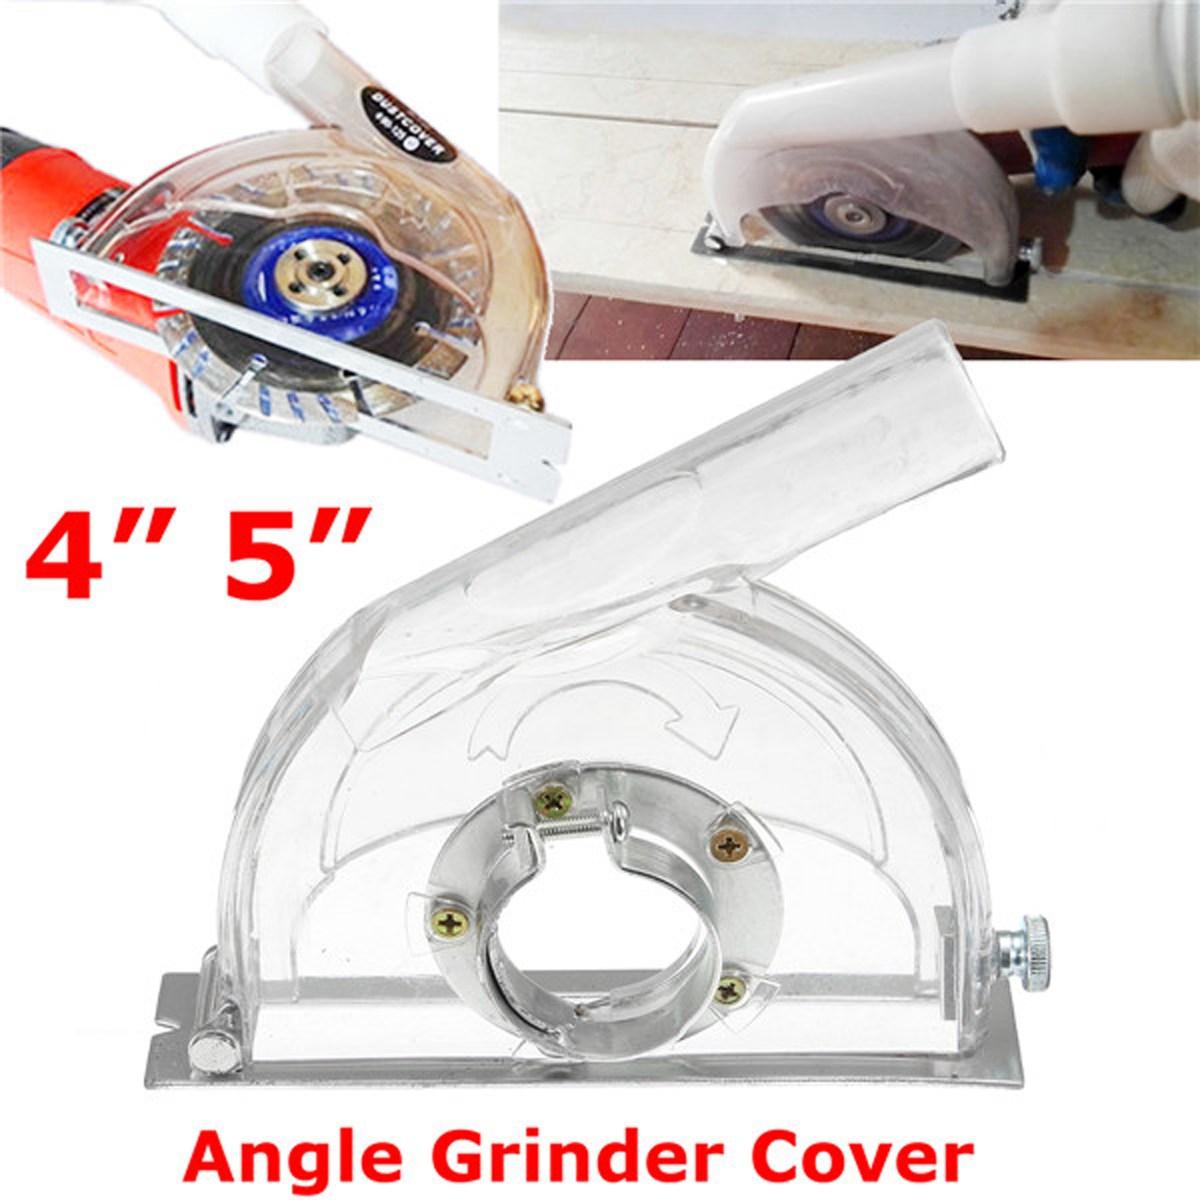 1Pcs Angle Grinder Cutting Clear Transparent Grinding Dust Cover For 4/ 5'' Grinder  High Quality